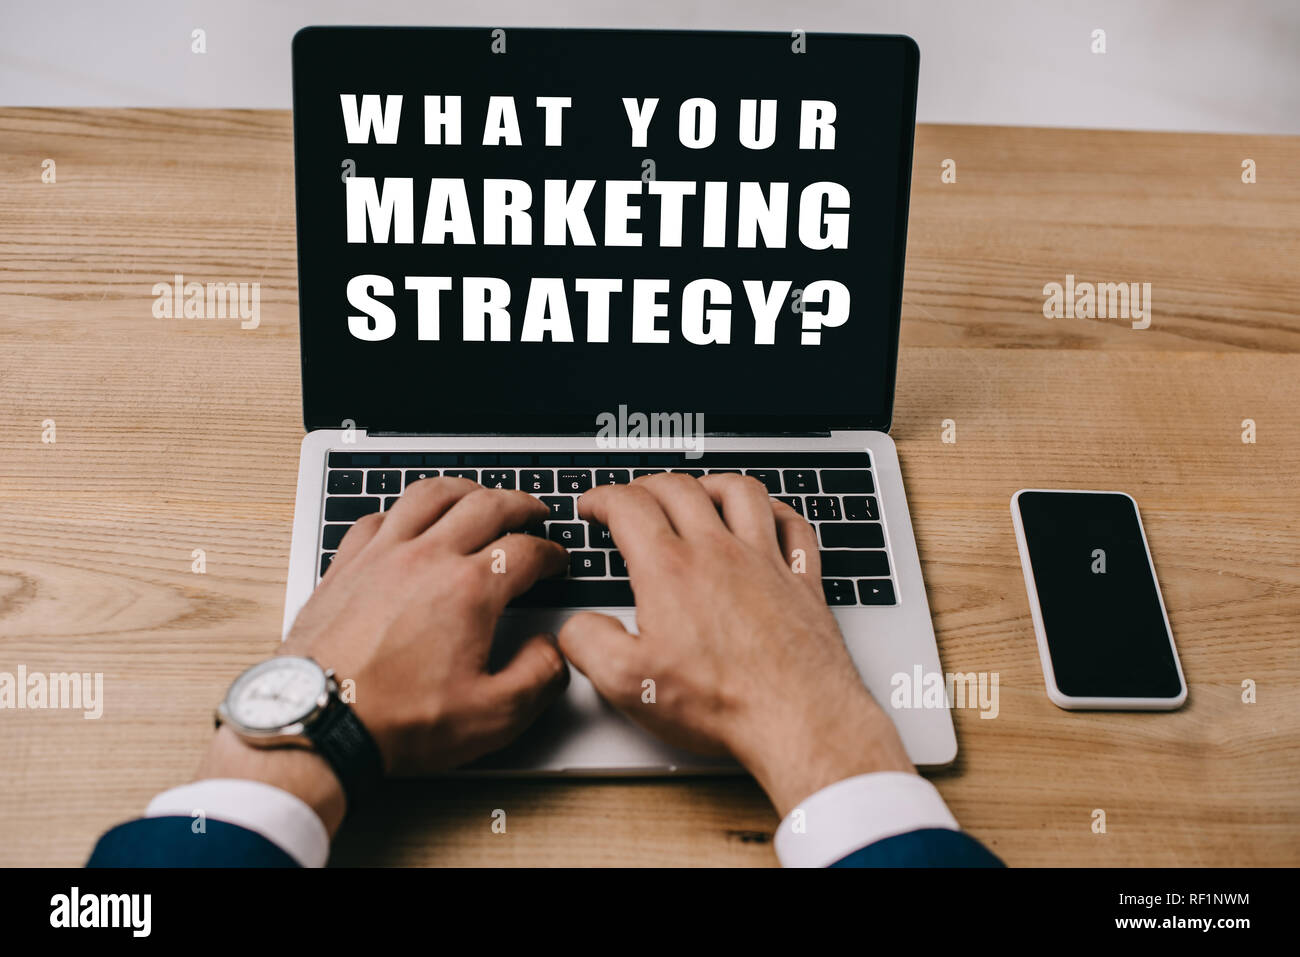 cropped view of businessman typing on laptop with what your marketing strategy? - Stock Image